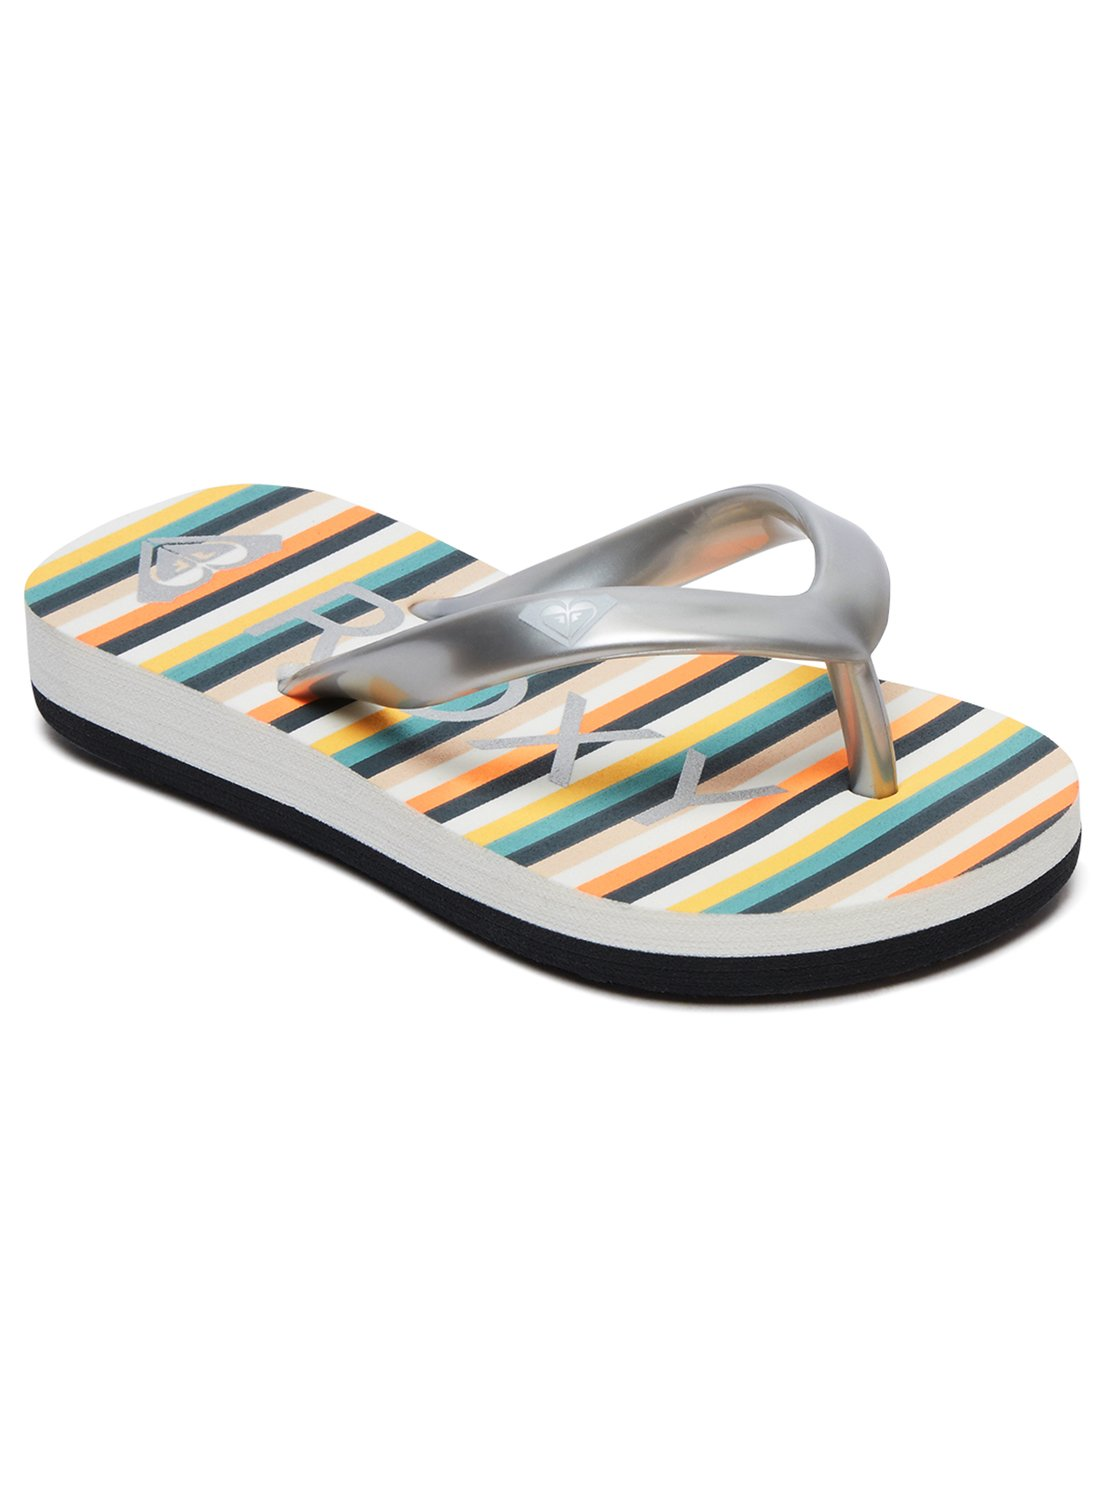 d1fdfb8d5 0 Bamboo - Flip-Flops for Toddlers Gray AROL100002 Roxy